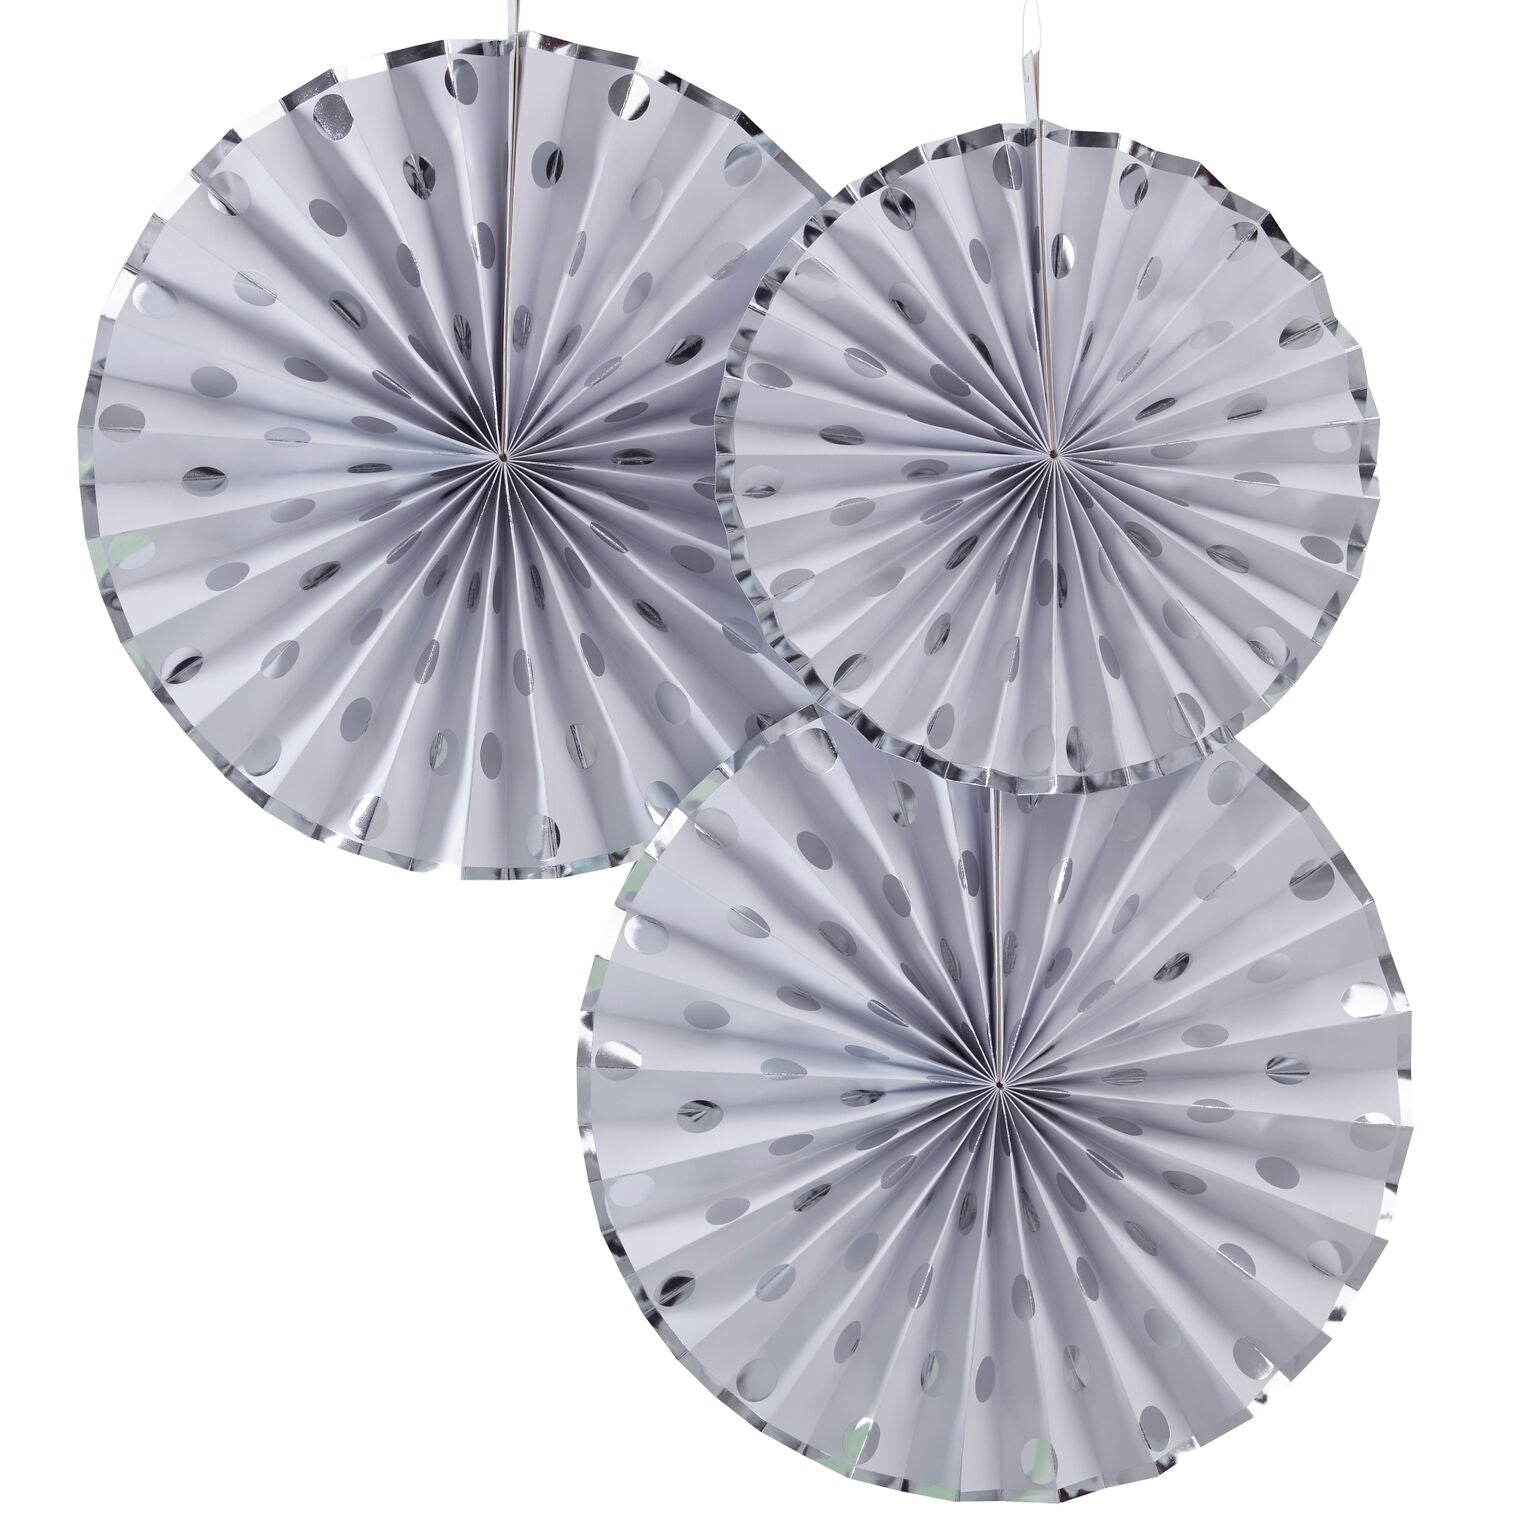 Polka Dot Paper Fan Decoration - Silver Foil